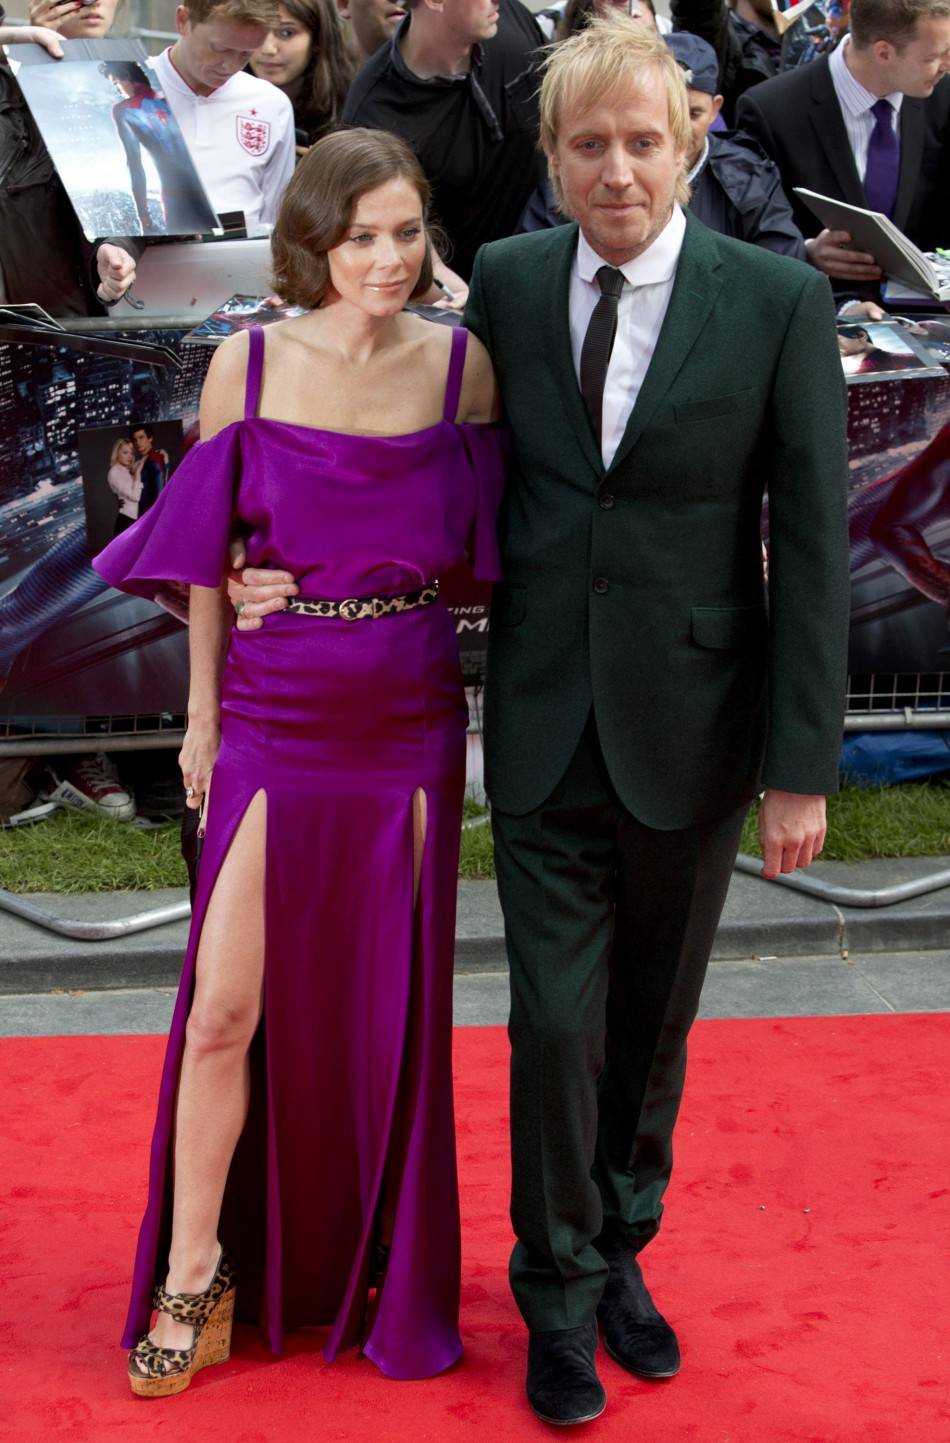 Welsh actor Ifans and English actress Friel arrive for the British premiere of quotThe Amazing Spider-Manquot at Leicester Square in London